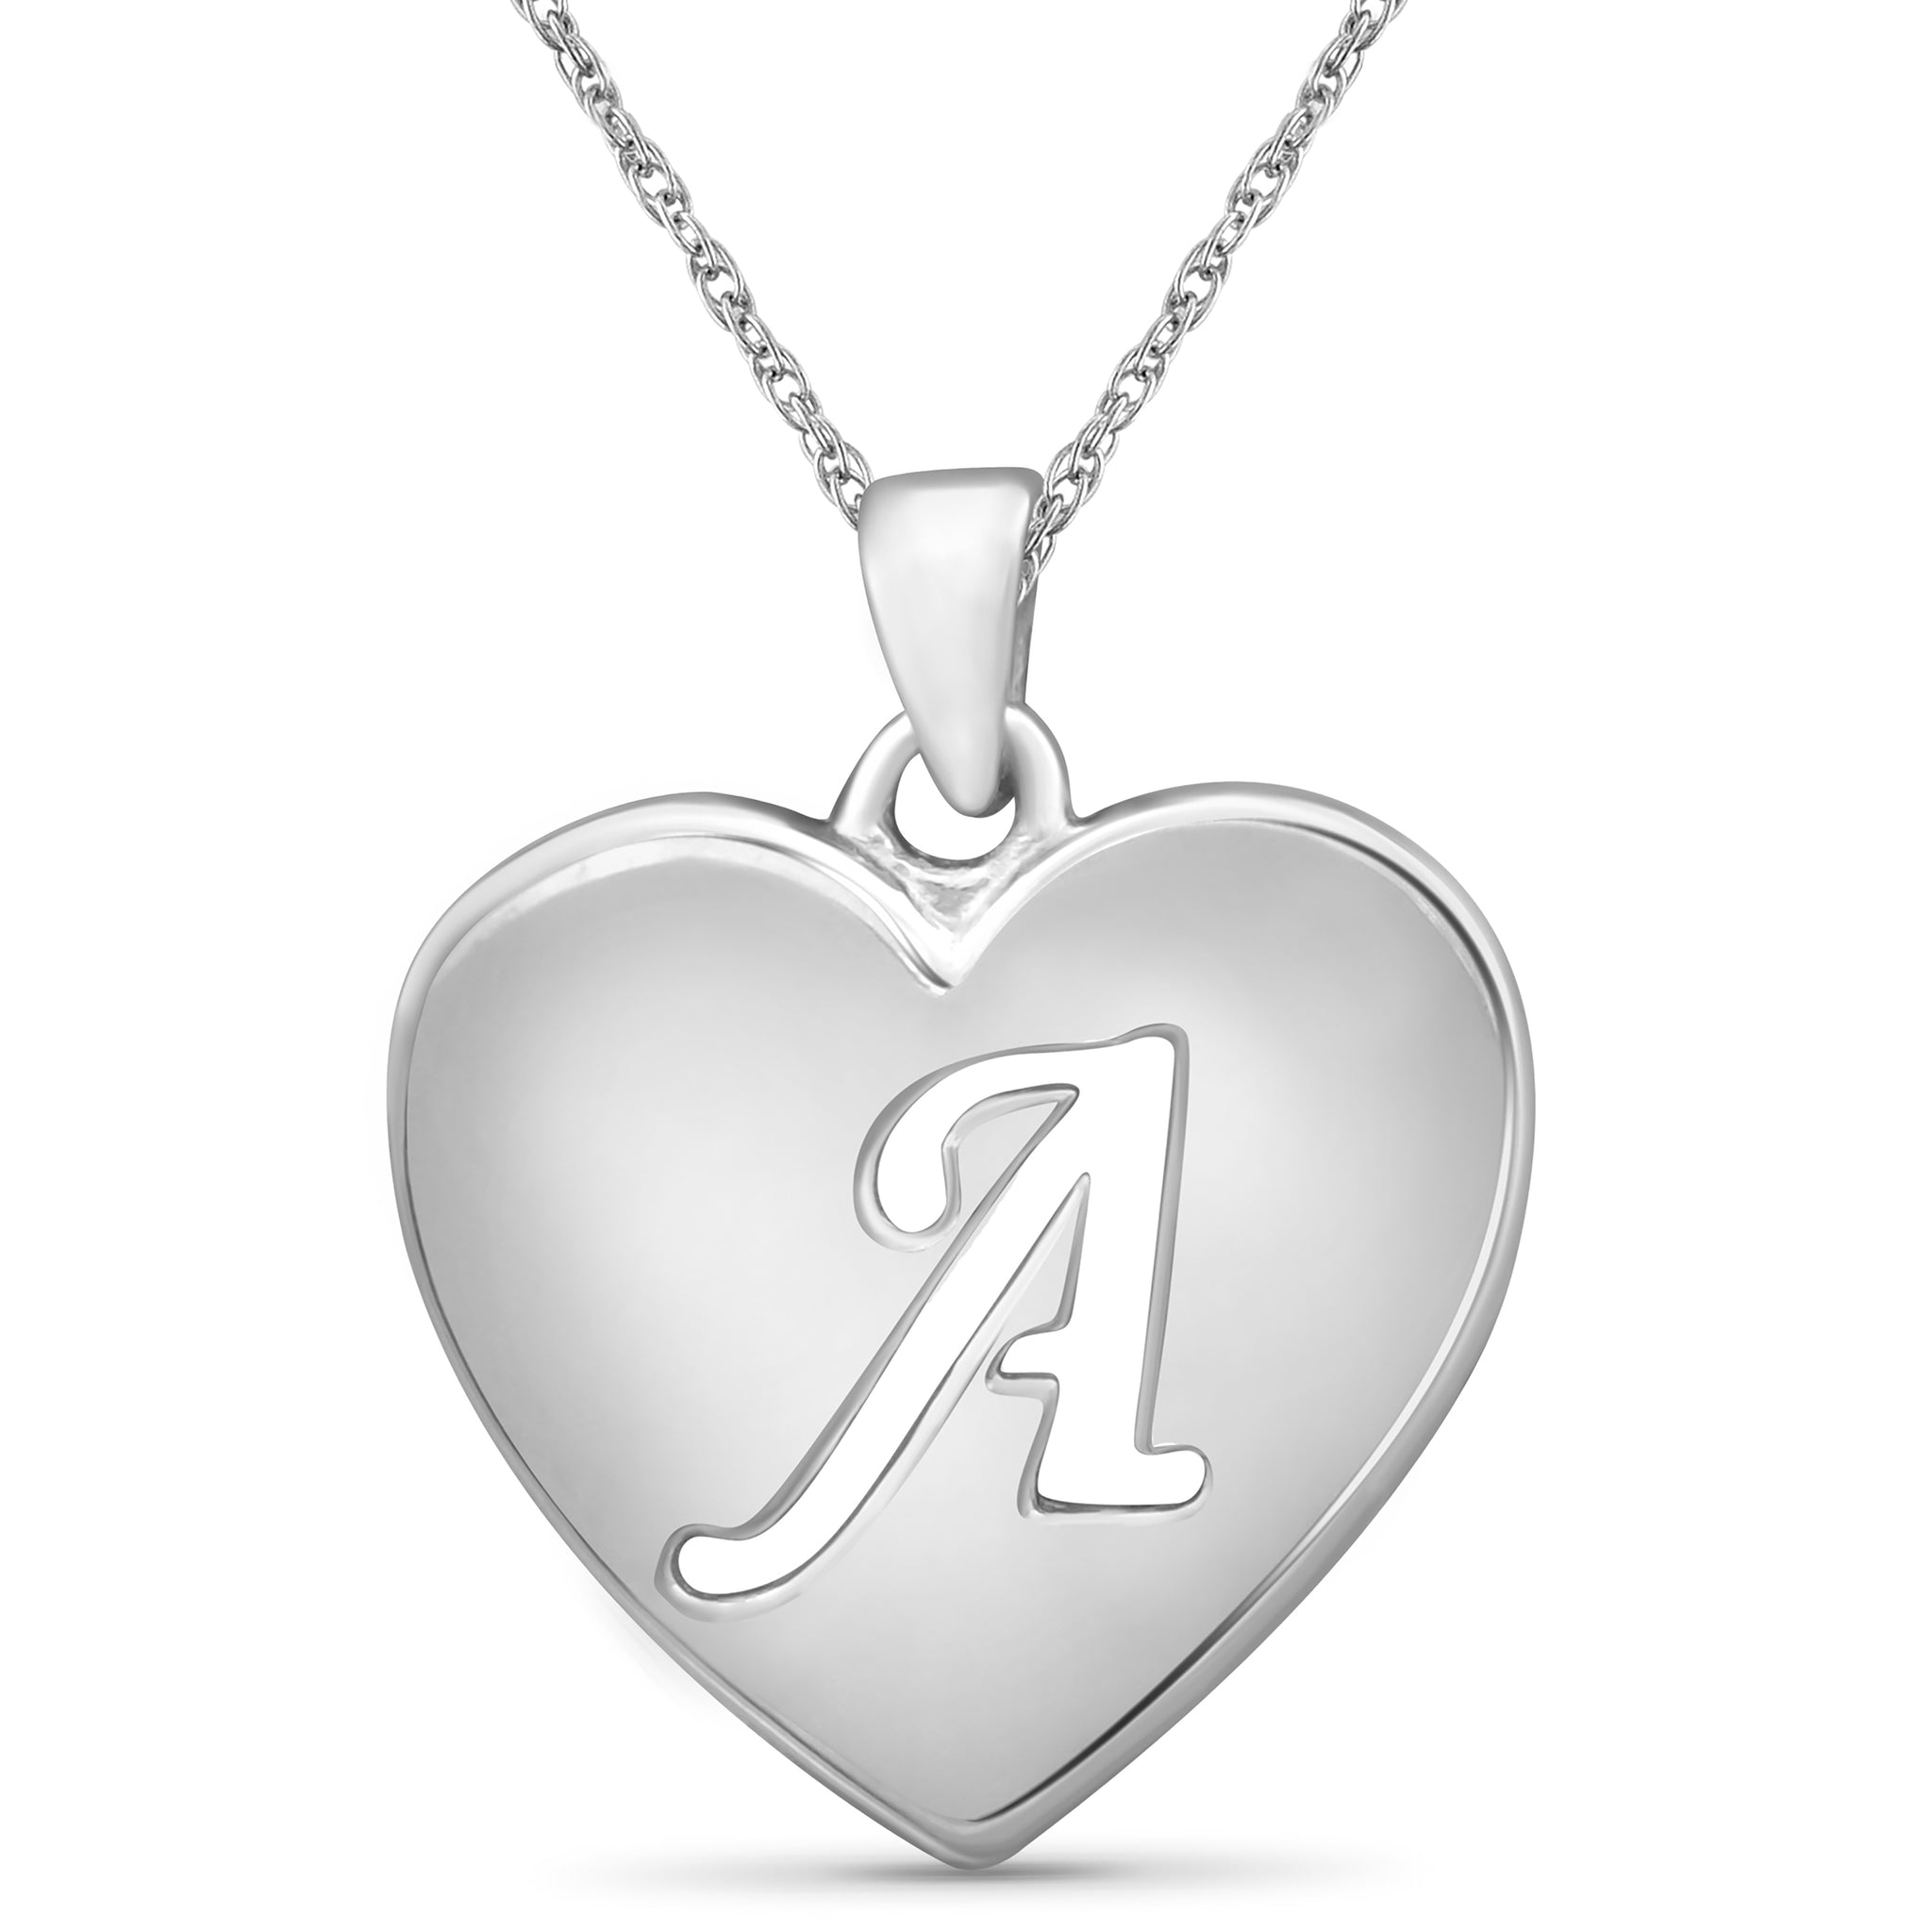 JewelonFire Initial Letter Pendant Necklace for Women | Customizable Sterling Silver A to Z Alphabet Monogram Necklaces for Girls | Cursive Script Capital Letters | Personalized Jewelry Gift for Her